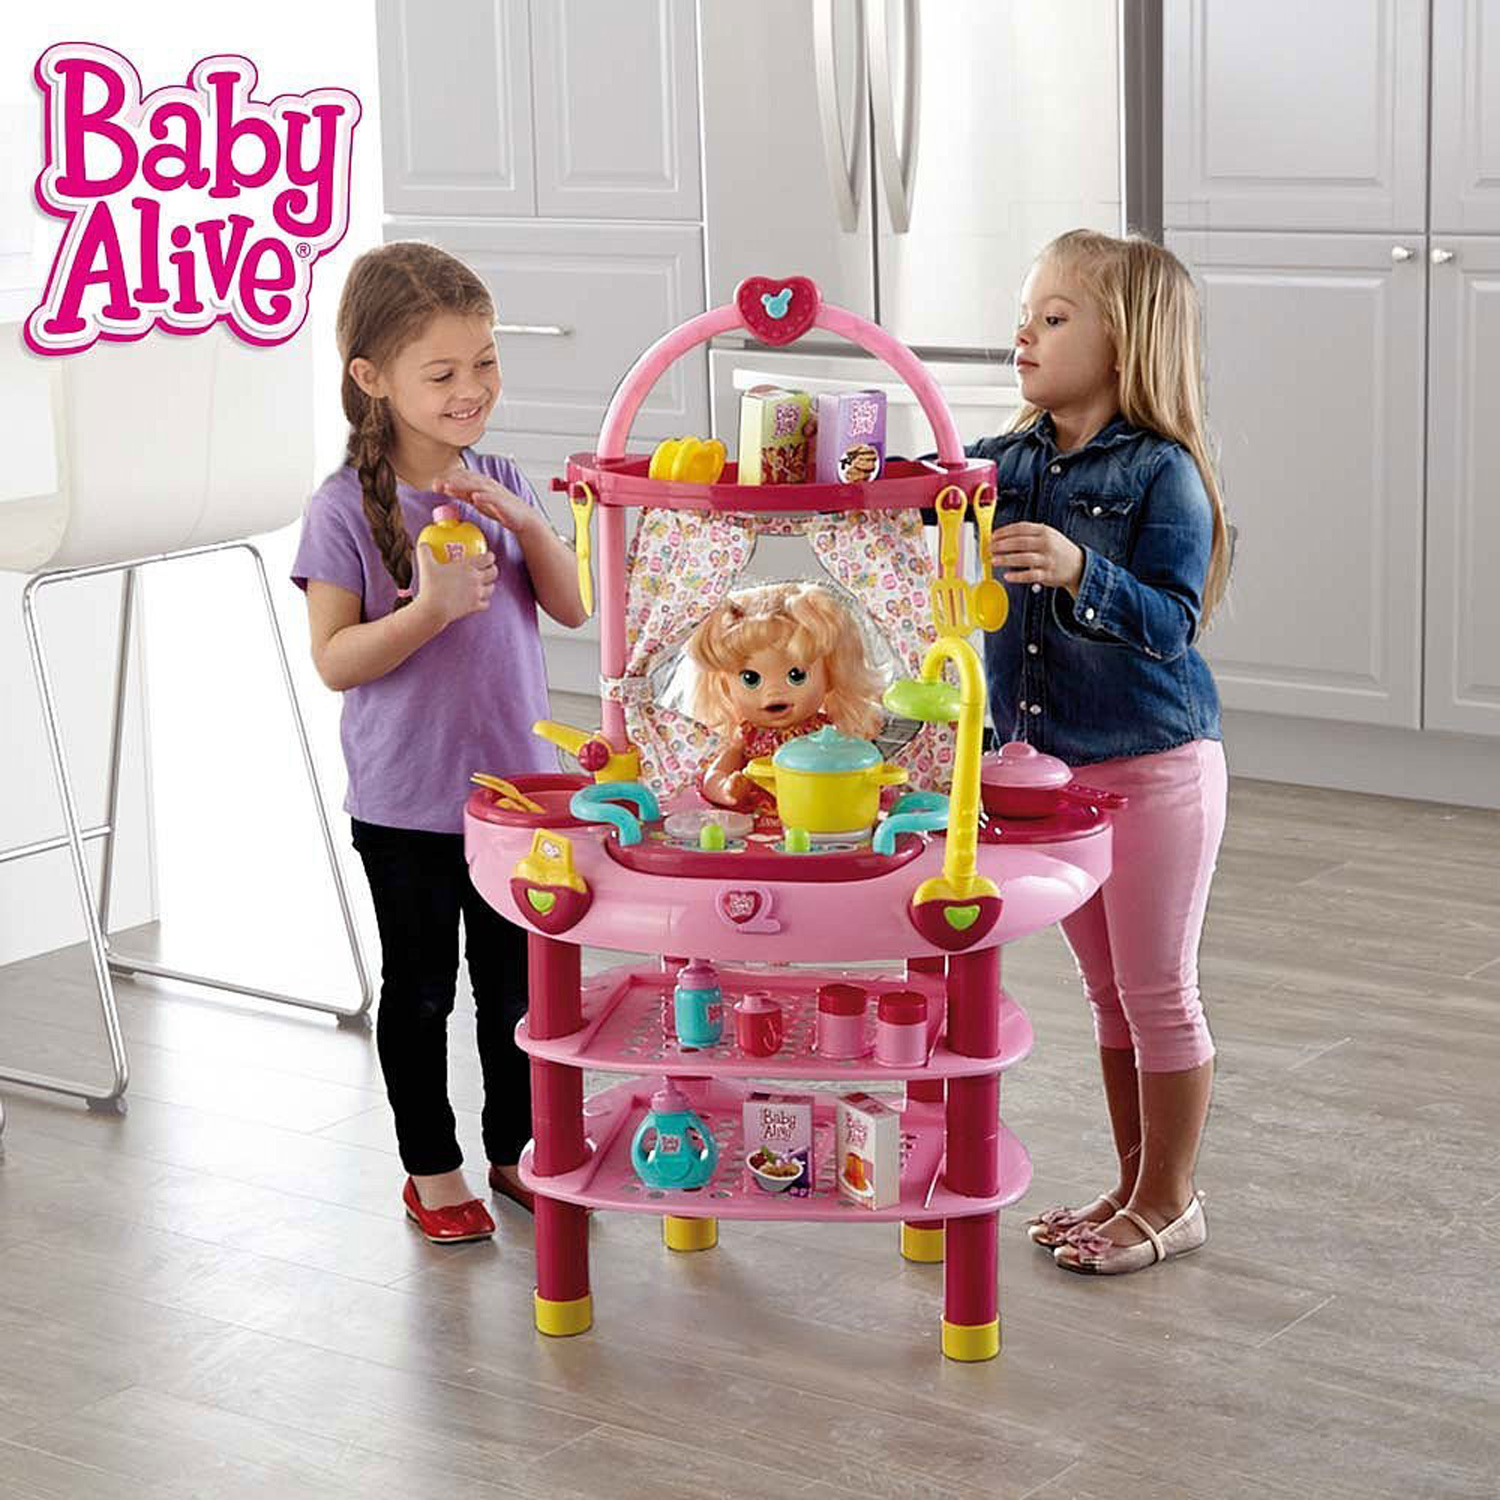 Baby Alive Doll 3 in 1 Cook 'n Care Play Set